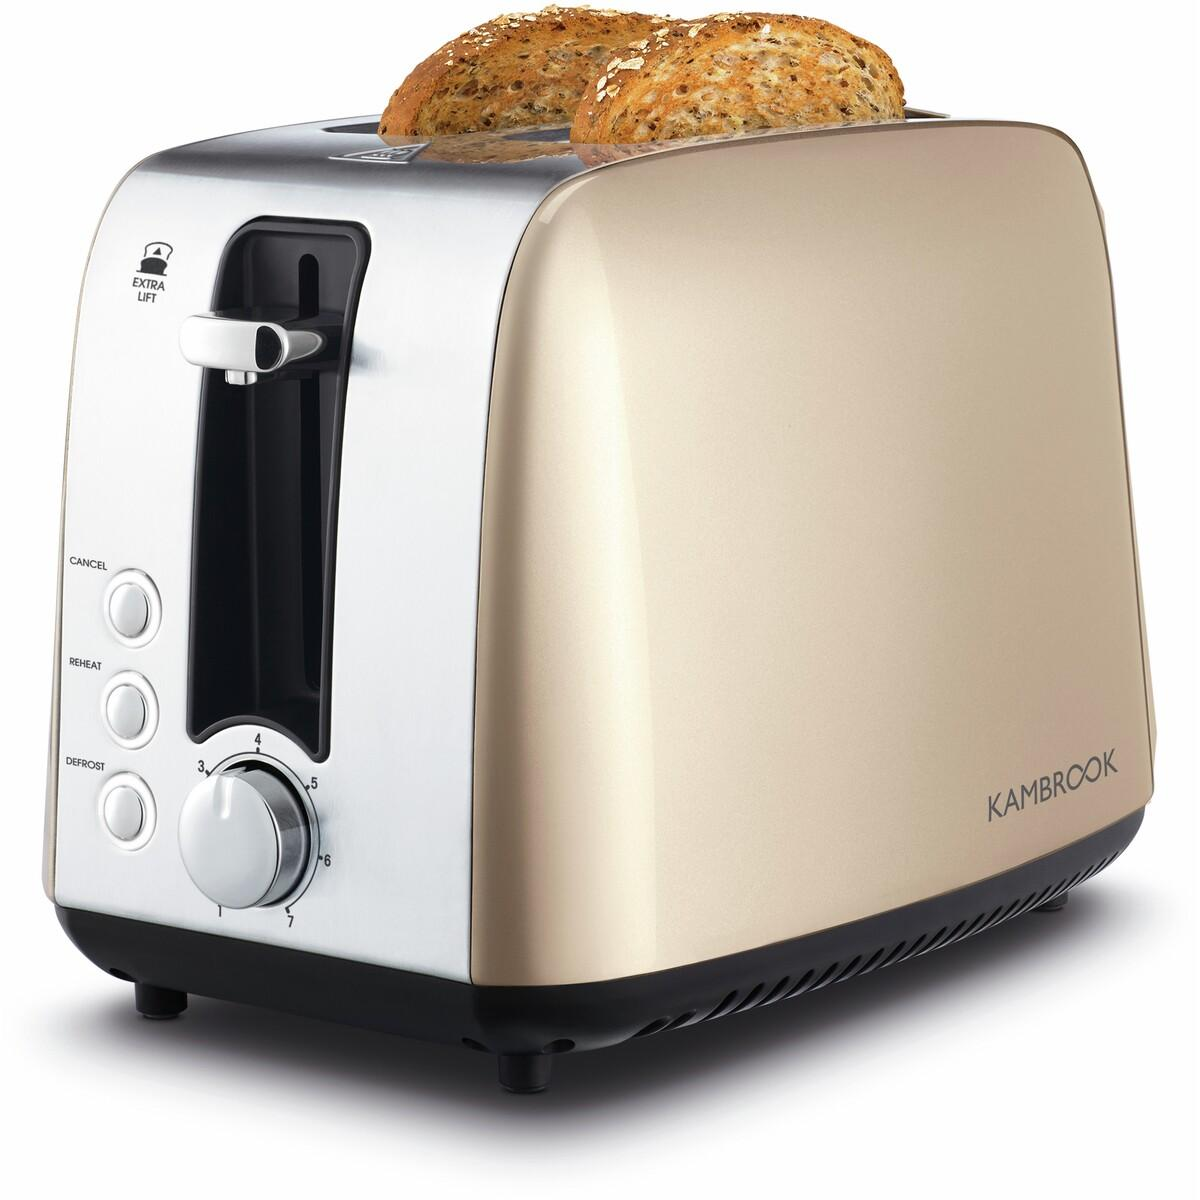 Kambrook Deluxe Collection 2 Slice Toaster